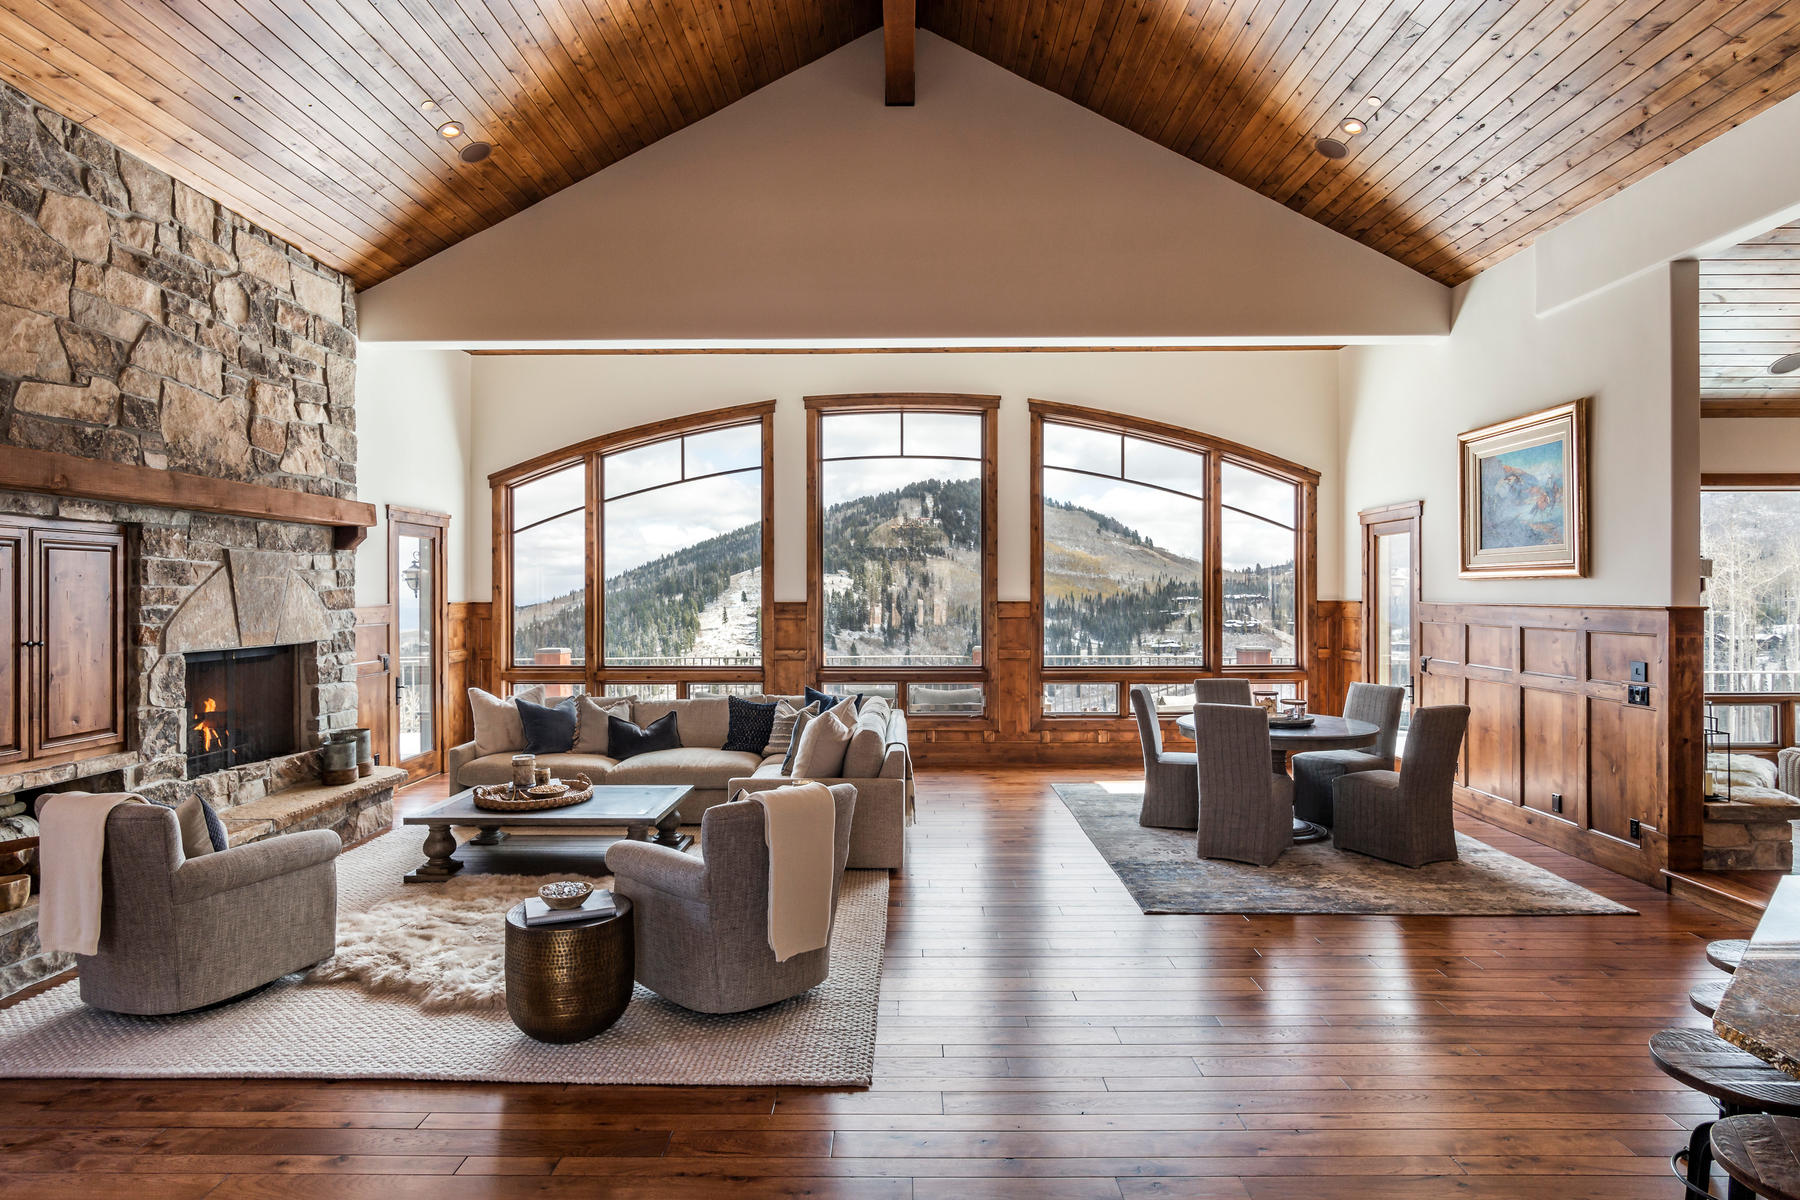 Single Family Homes for Sale at Gracious Slope-side Mountain Living with Captivating Views 151 White Pine Canyon Rd, Park City, Utah 84060 United States